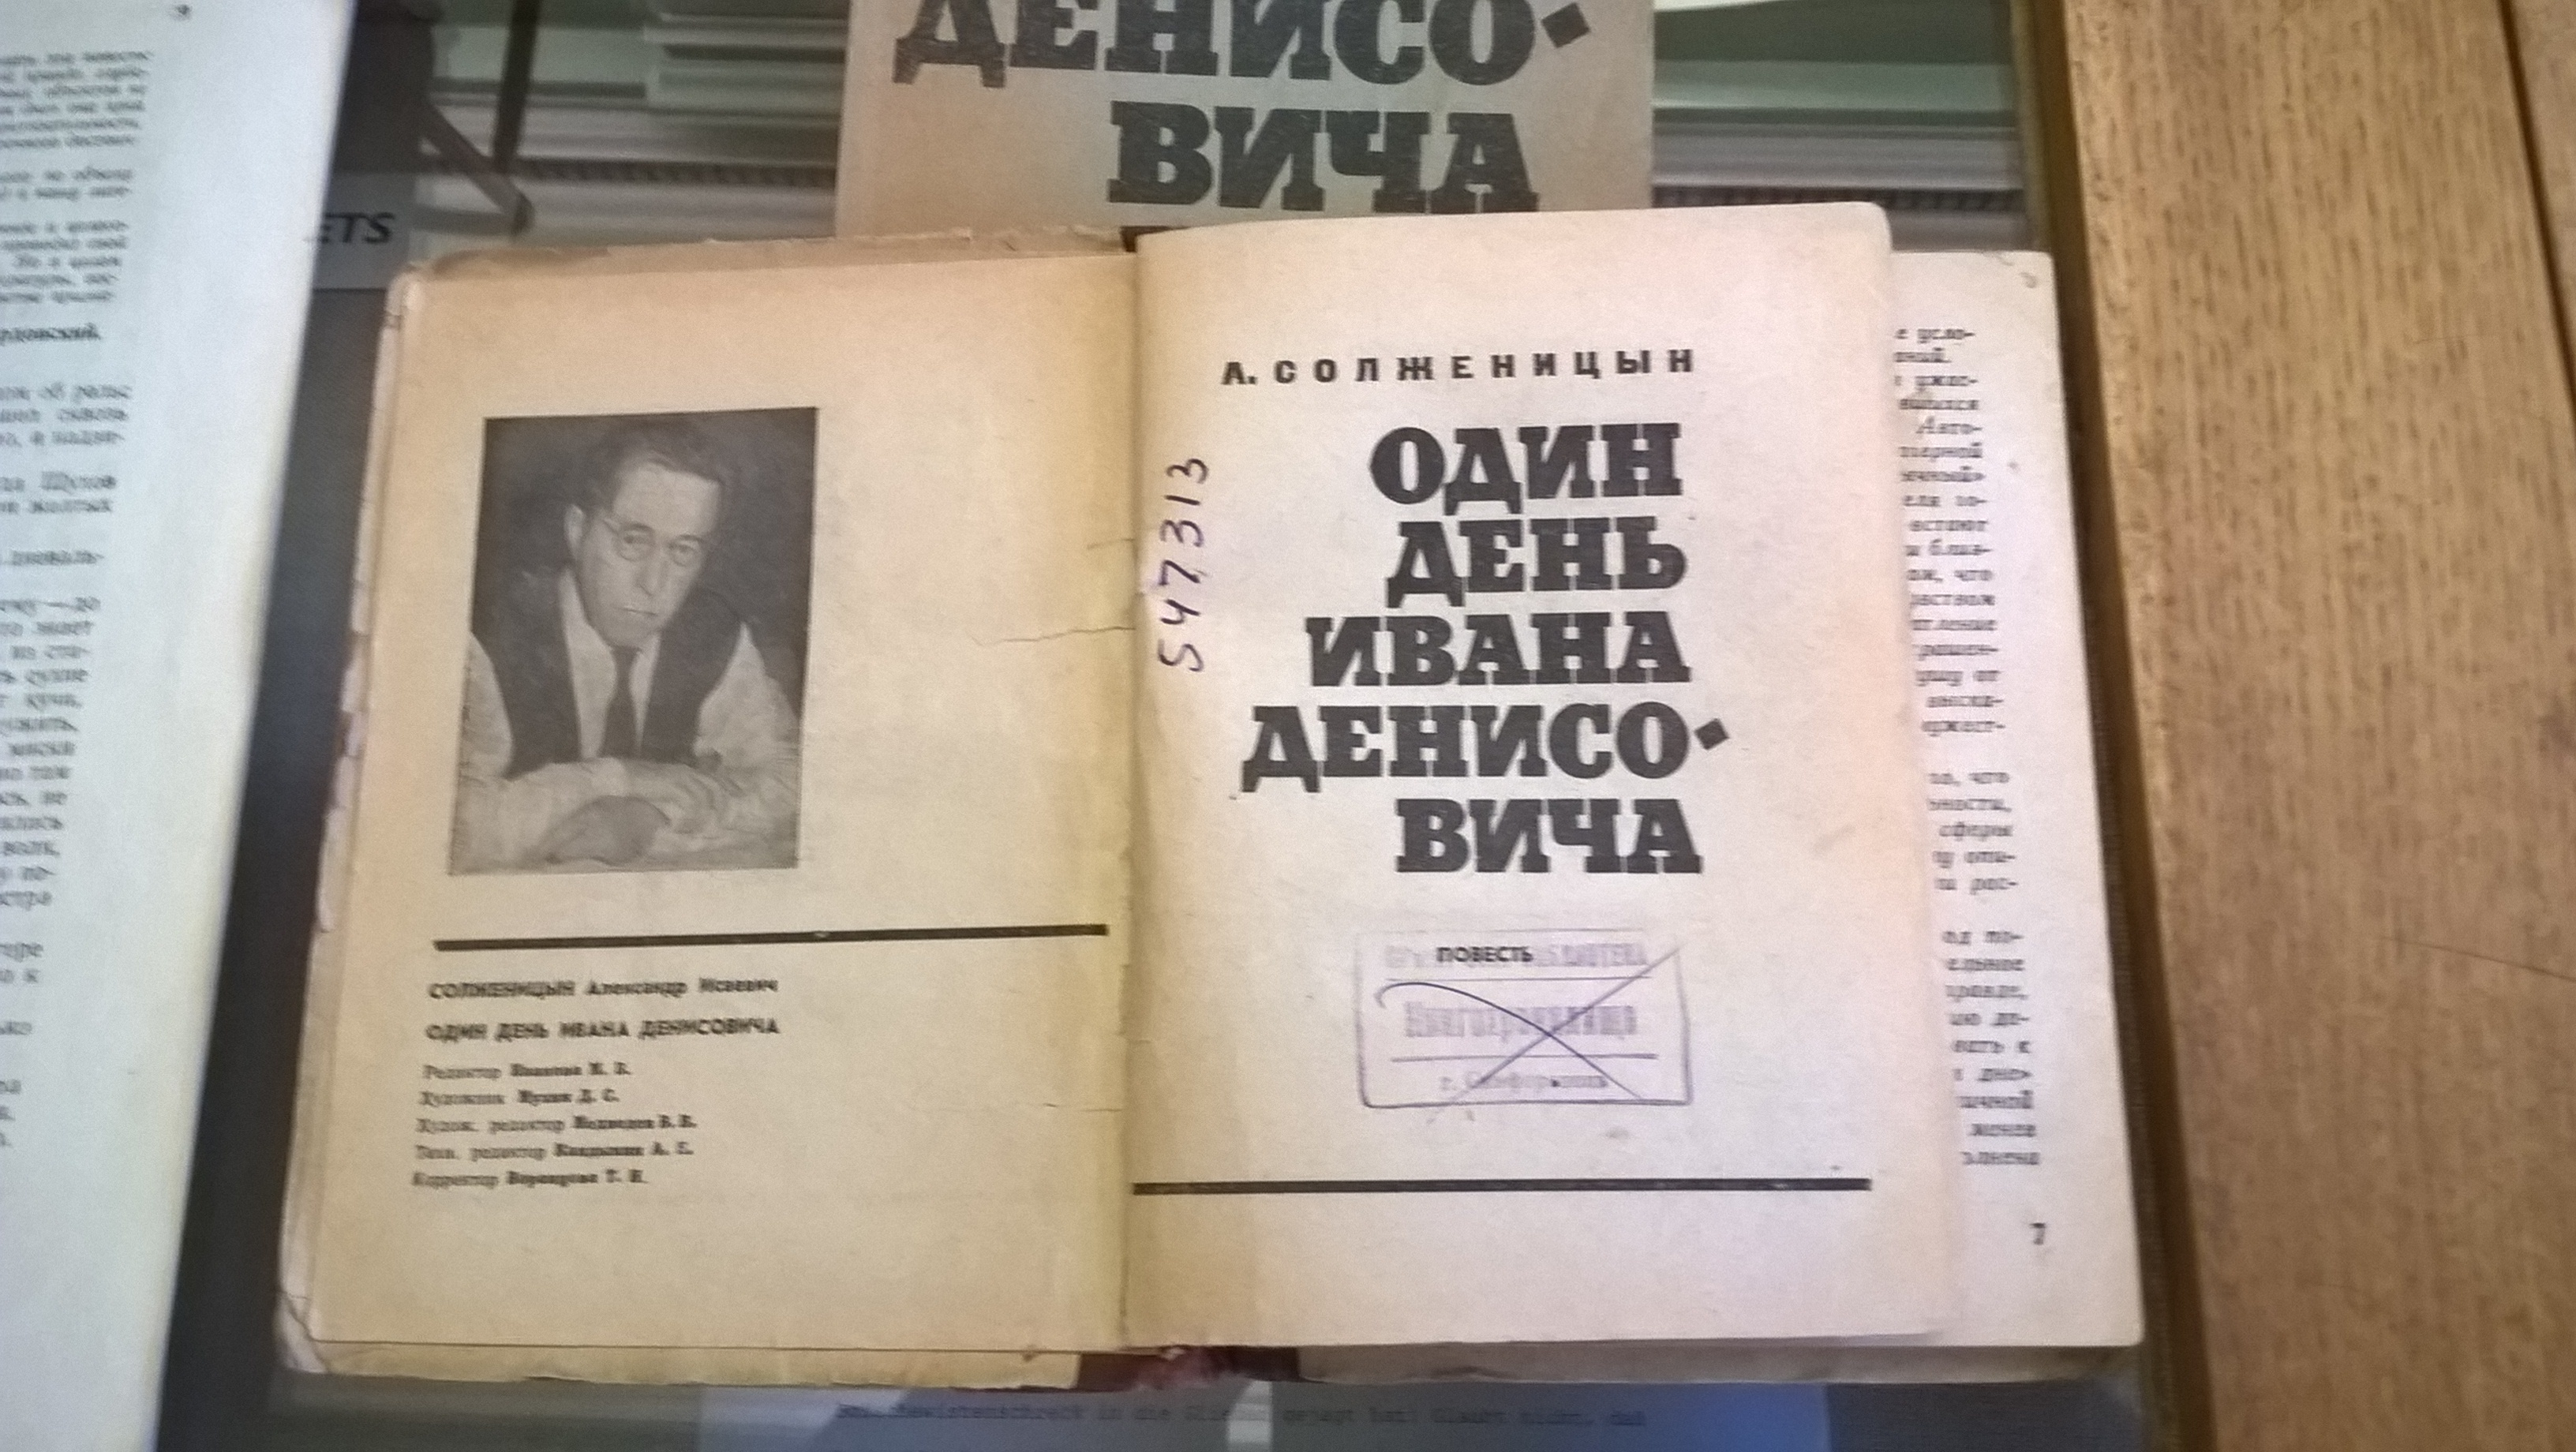 A day in the life of Ivan Denisovich established Solzhenitsyn's reputation when it was published in 1962 and was translated into many languages.